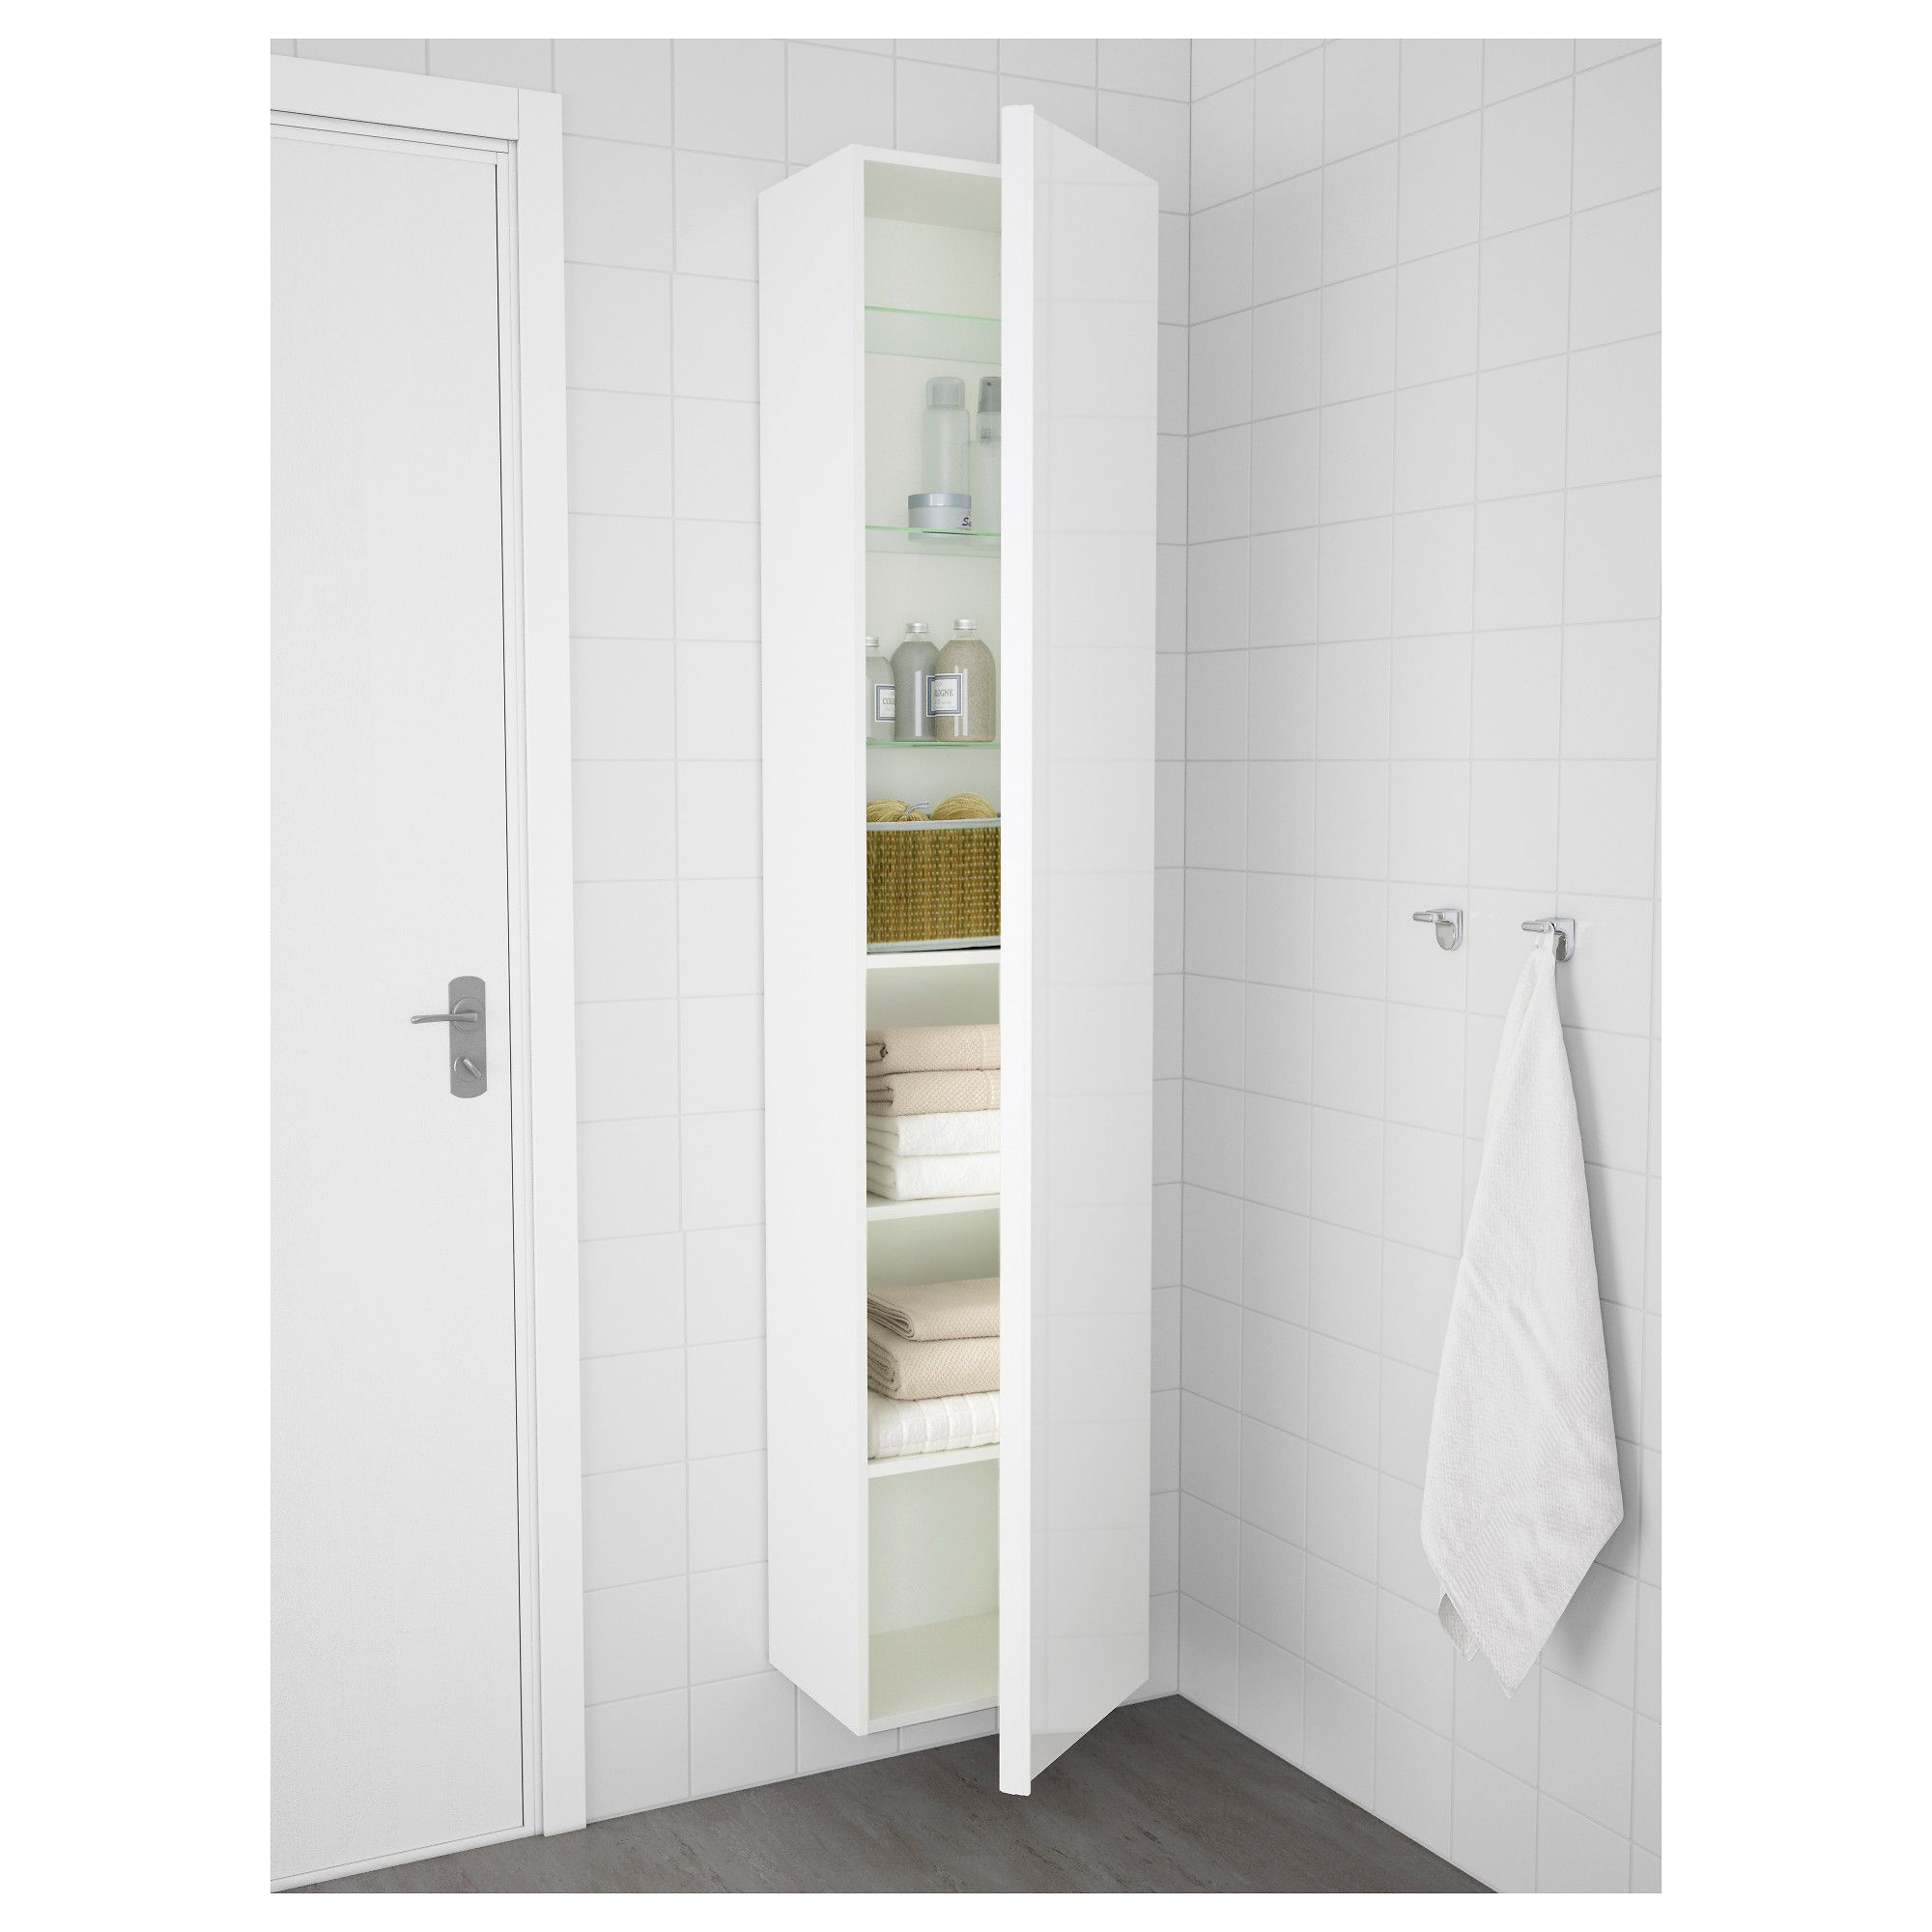 IKEA GODMORGON high cabinet 10 year guarantee. Read about the terms ...